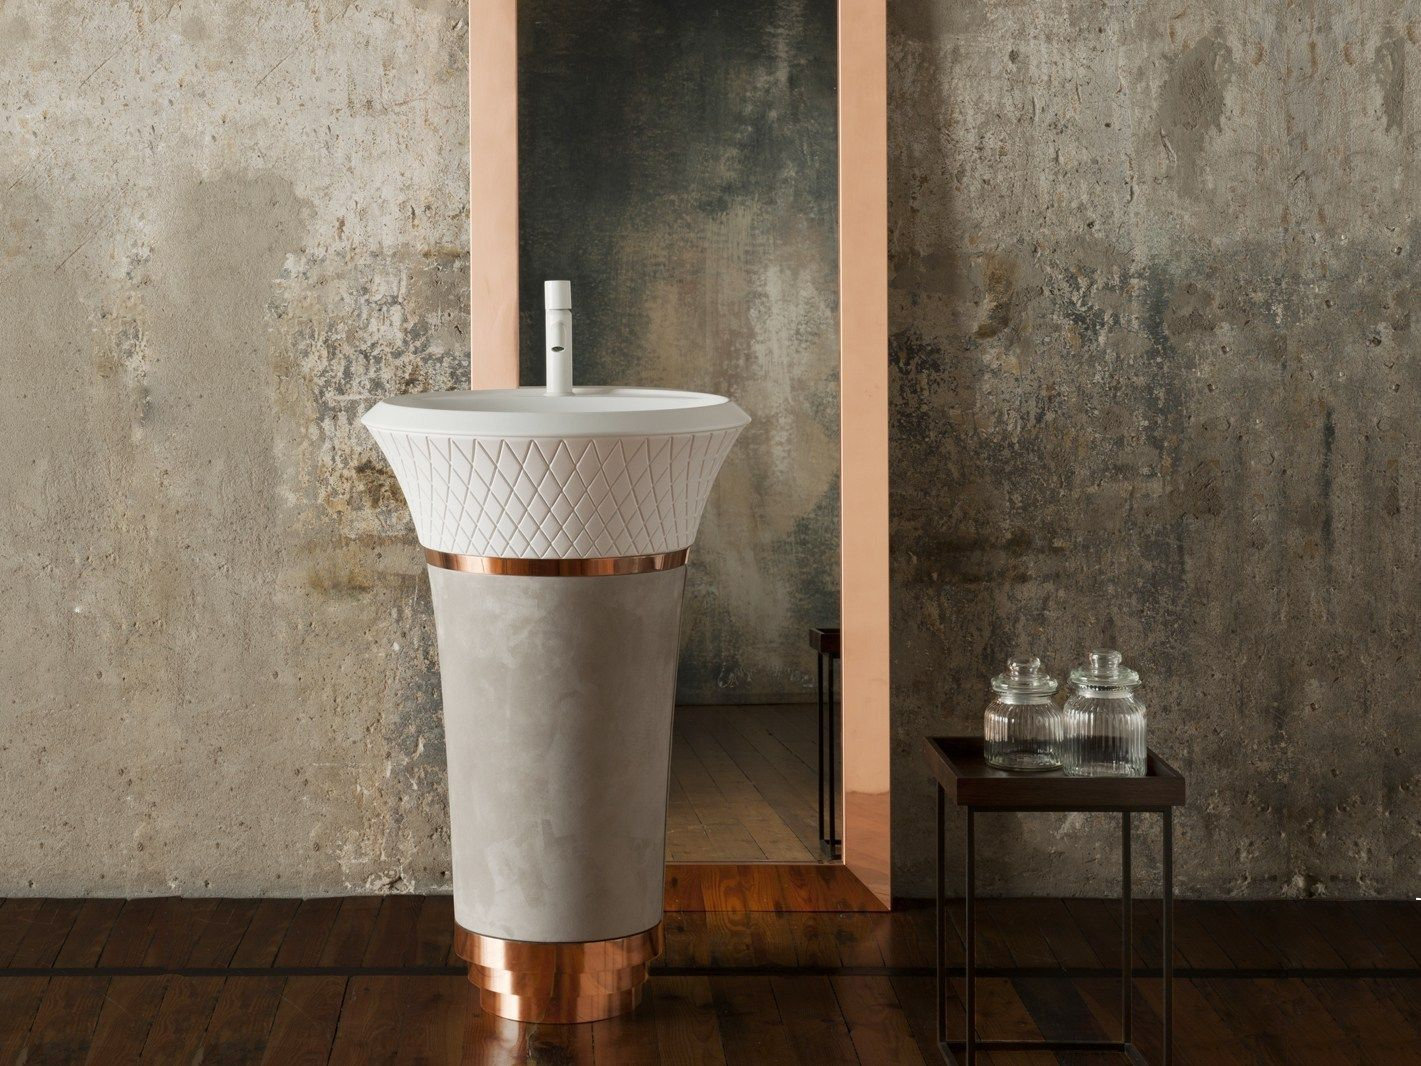 collections at maison & objet - Falper Arredo Bagno